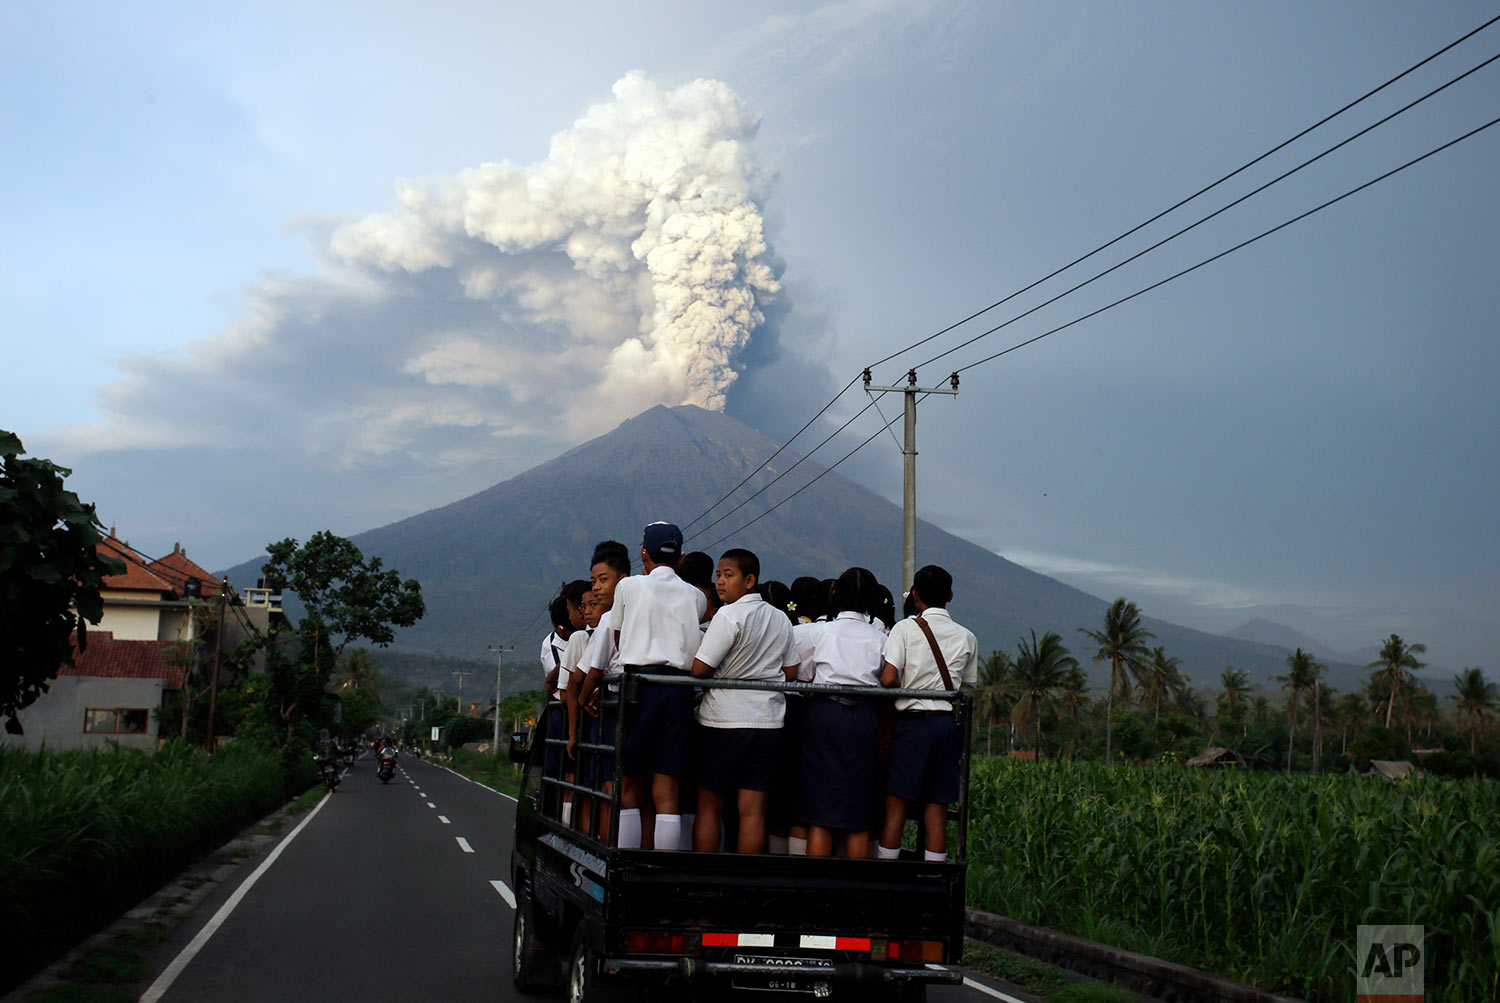 School students stand on a truck as their transport to go to school with the Mount Agung volcano spews smoke and ash in Karangasem, Bali, Indonesia, Tuesday, Nov. 28, 2017. Indonesia authorities raised the alert for the rumbling volcano to highest level on Monday and closed the international airport on the tourist island of Bali stranding some thousands of travelers.(AP Photo/Firdia Lisnawati)